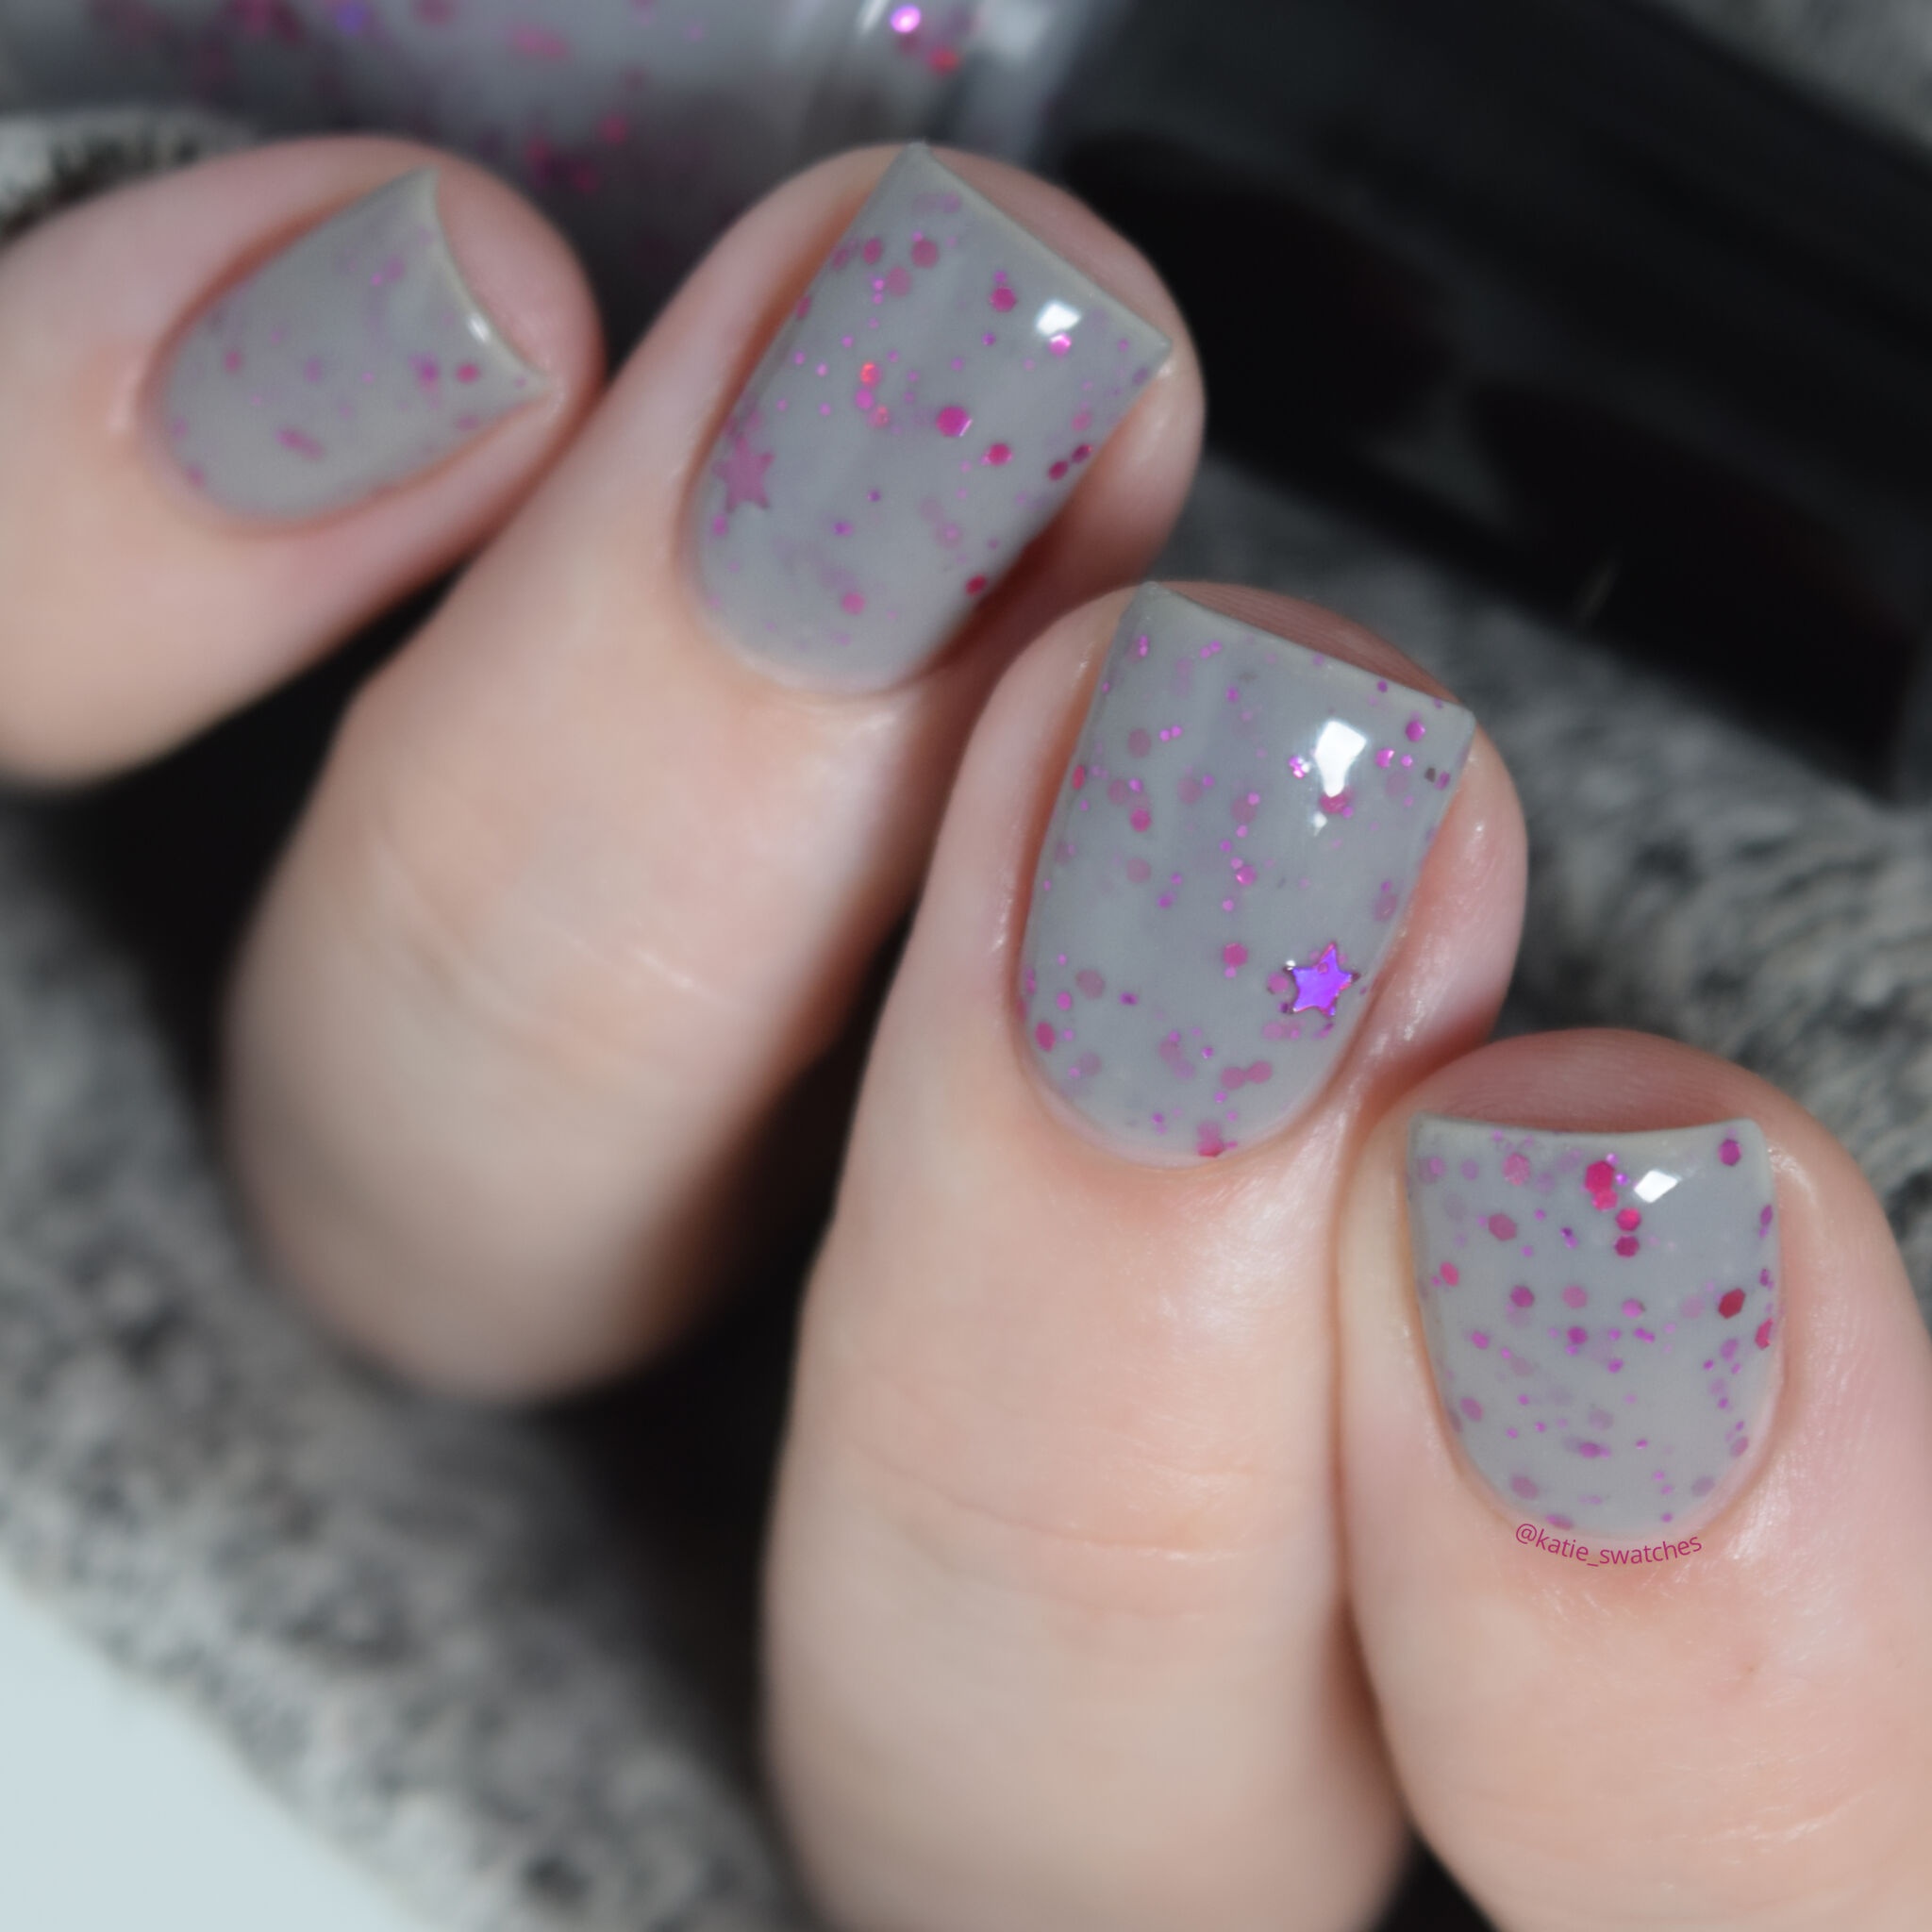 My Indie Polish - In The Beginning nail polish swatch Polish Pickup PPU March 2020. Grey crelly nail polish with metallic pink glitters